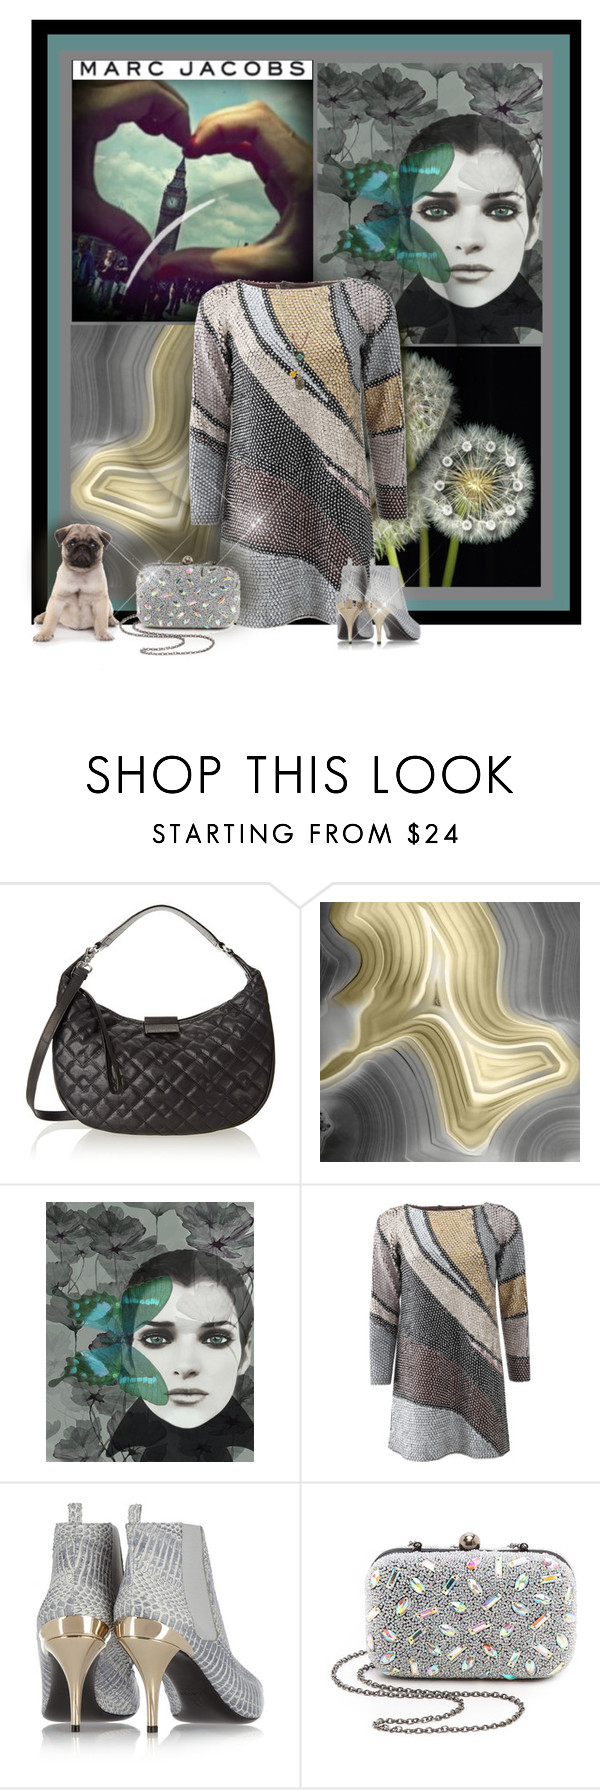 """""""Marc Jacobs"""" by sherry7411 ❤ liked on Polyvore featuring Marc by Marc Jacobs, WALL, Marc Jacobs, Lanvin, Santi and 1928"""